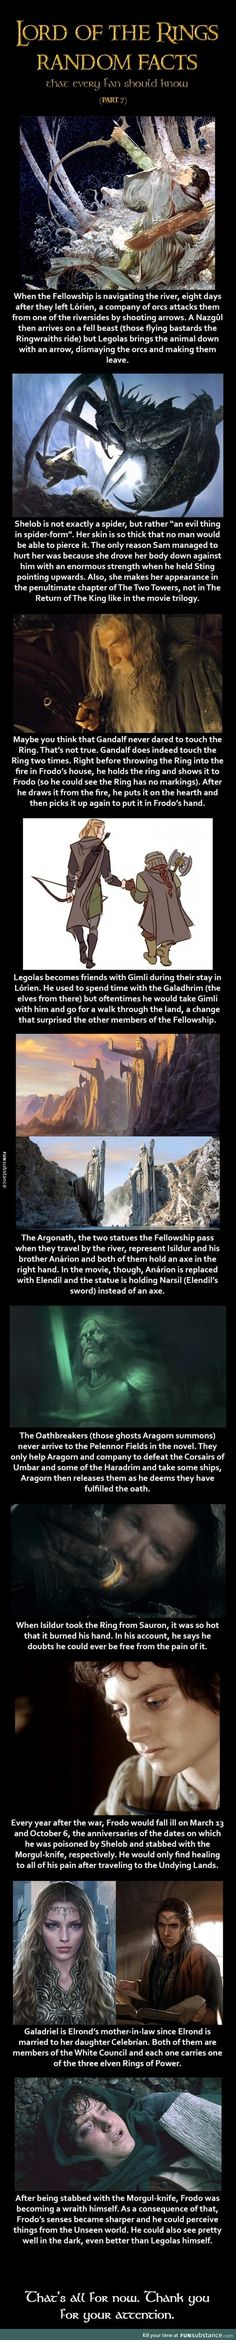 LOTR facts